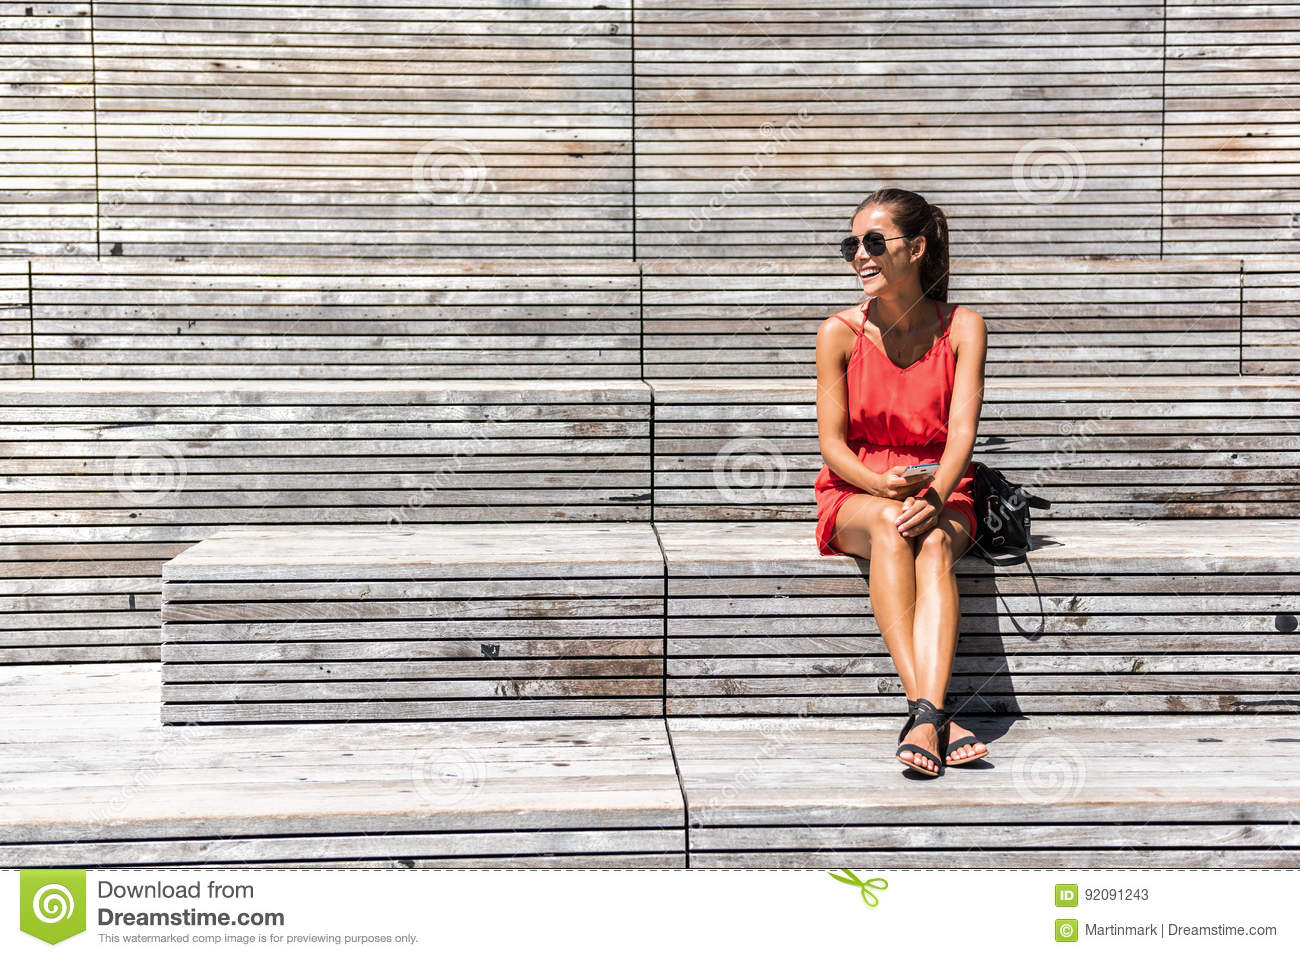 Woman in New York relaxing on bench on High Line